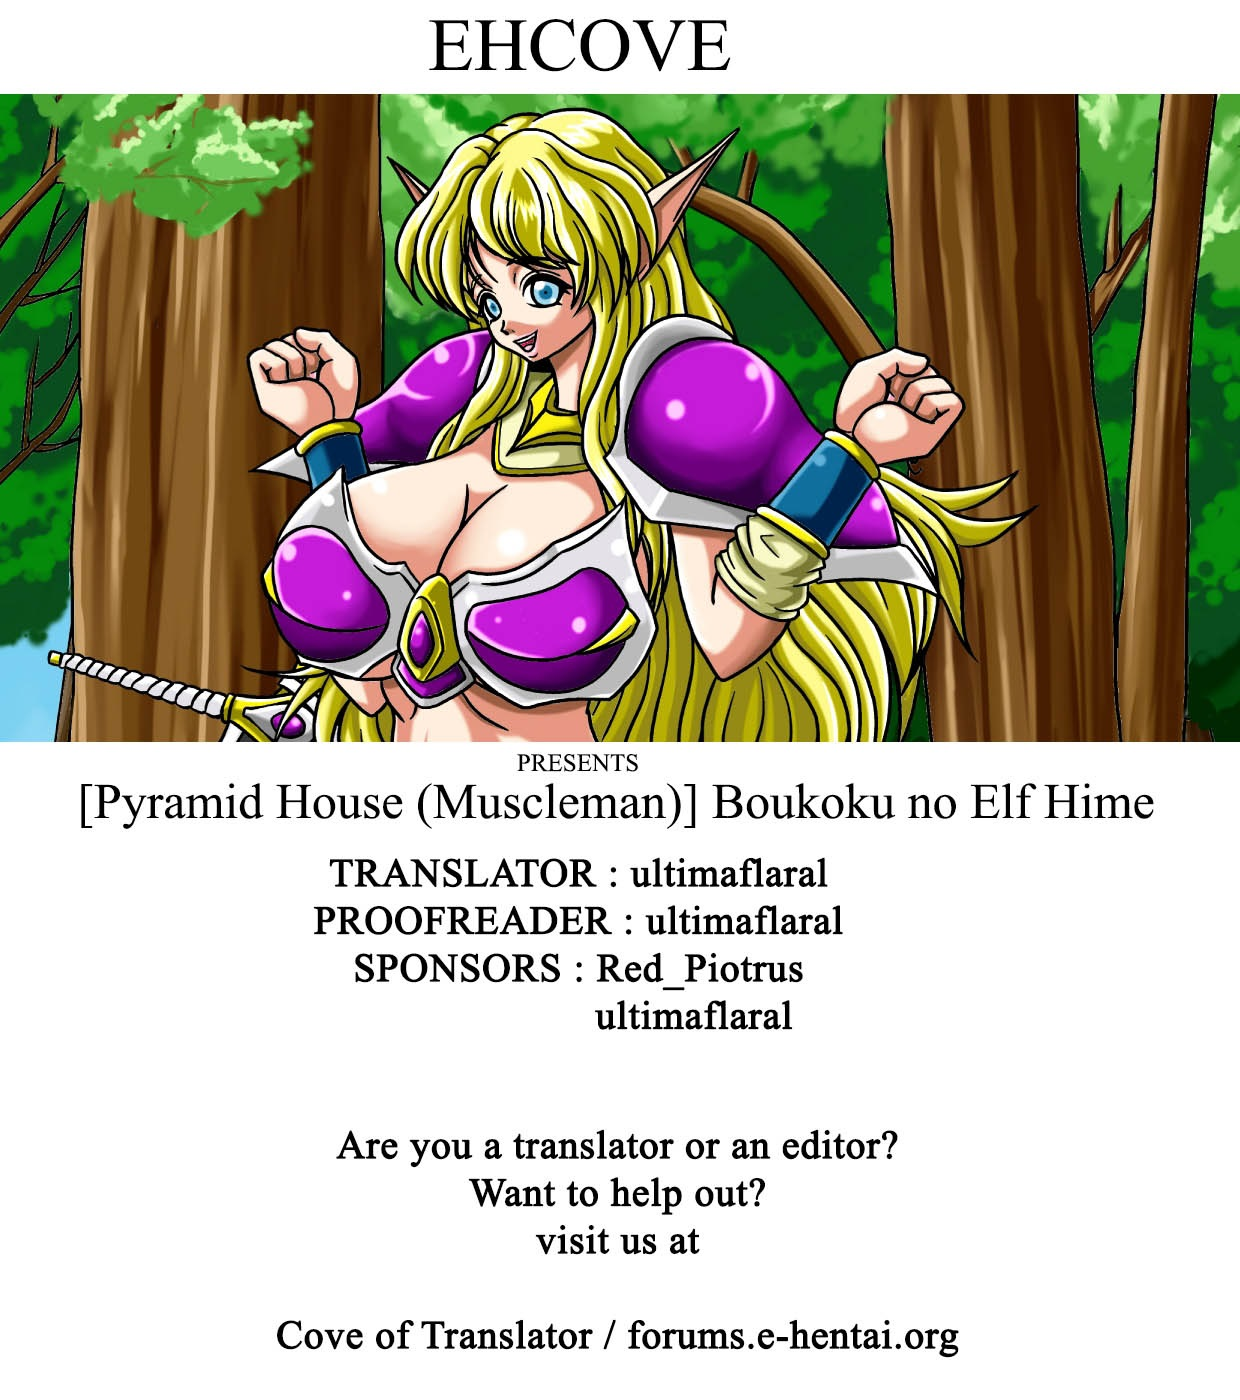 Boukoku no Elf Hime- Pyramid House